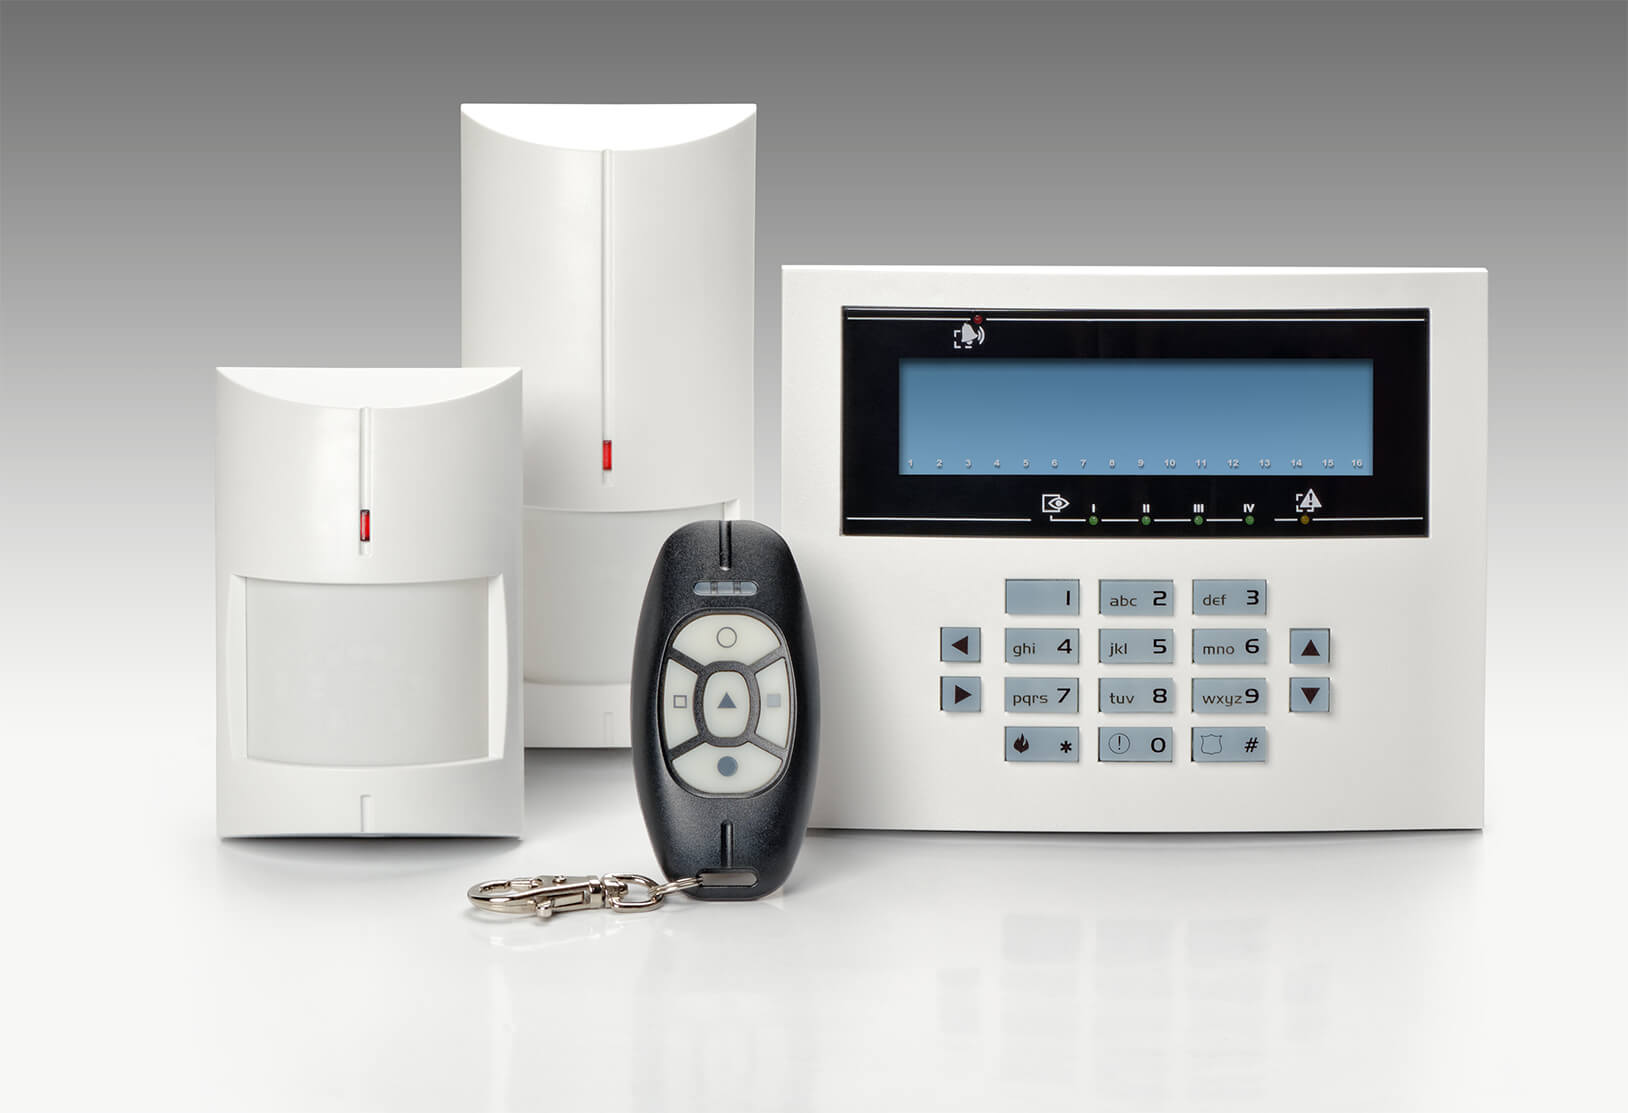 Burglar Alarms Repair in Hackney E8 - Local Hackney E8 alarm engineers.Call 02078872244 - See cost/price for burglar alarm repair and book your alarm engineer. No Hidden charges,No Contracts, Book as you need.Engineers on demand.All alarm makes repaired.Same day service ability.